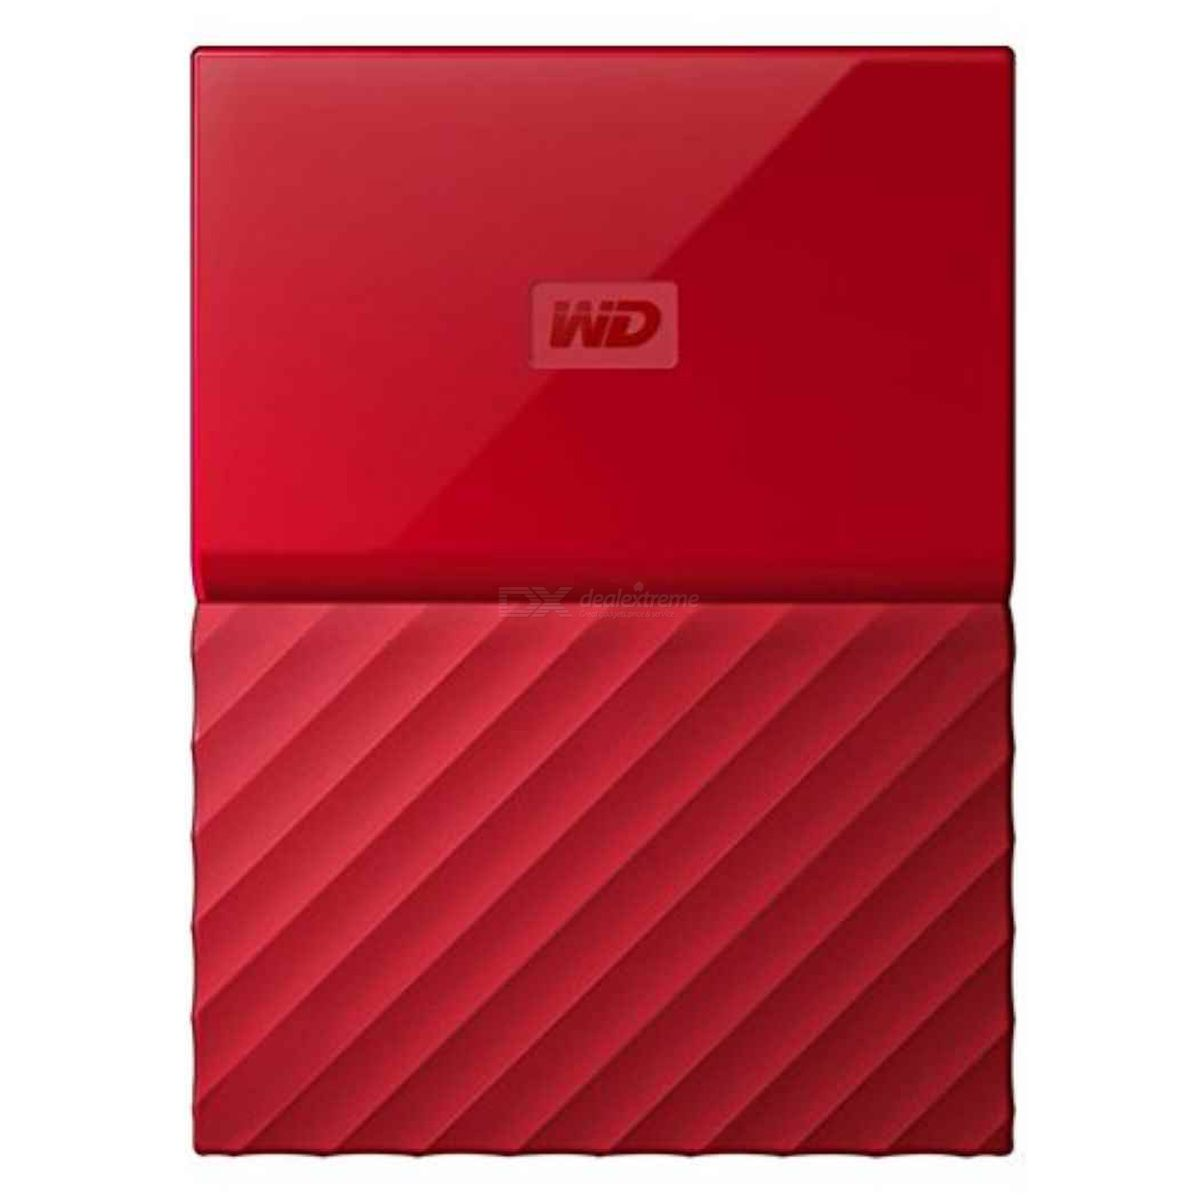 WD My Passport 1TB 2.5quot External Drive USB3.0 WDBYNN0010BRD - Red